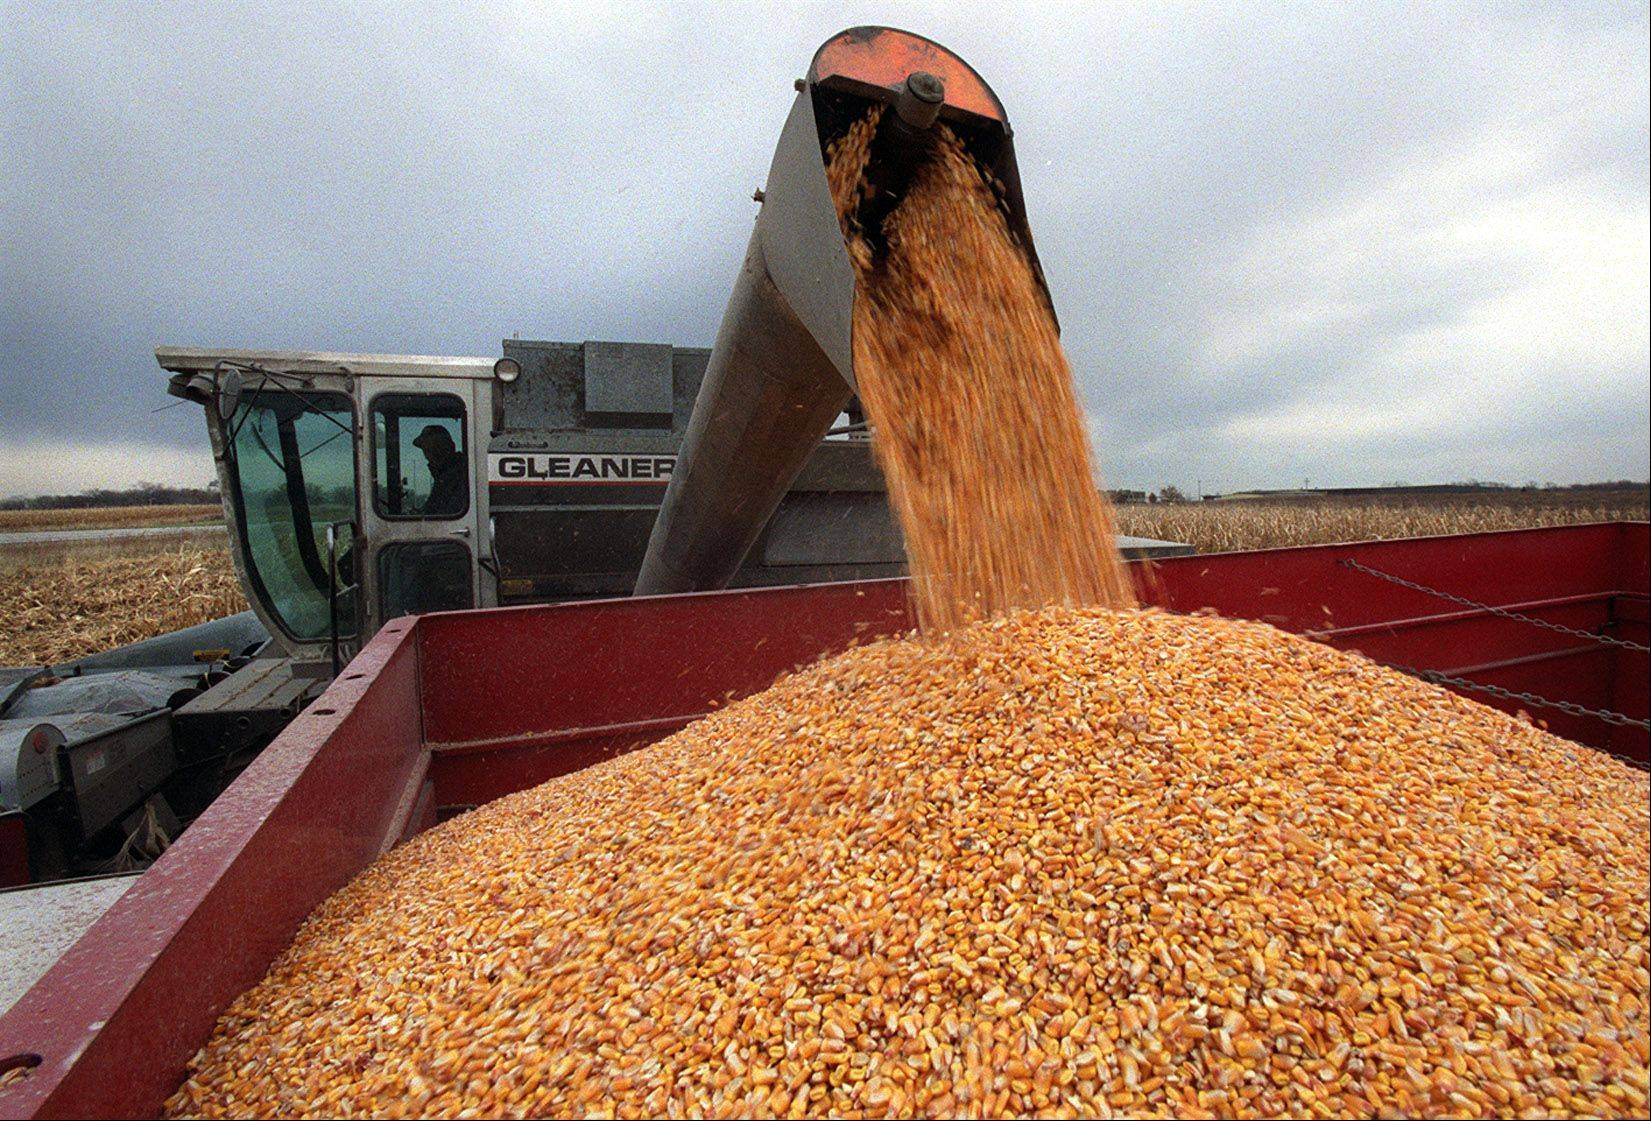 A drought covering two-thirds of the country has damaged much of the country's corn crops and pushed grain prices to record levels, triggering fears that a spike in food prices will soon follow.